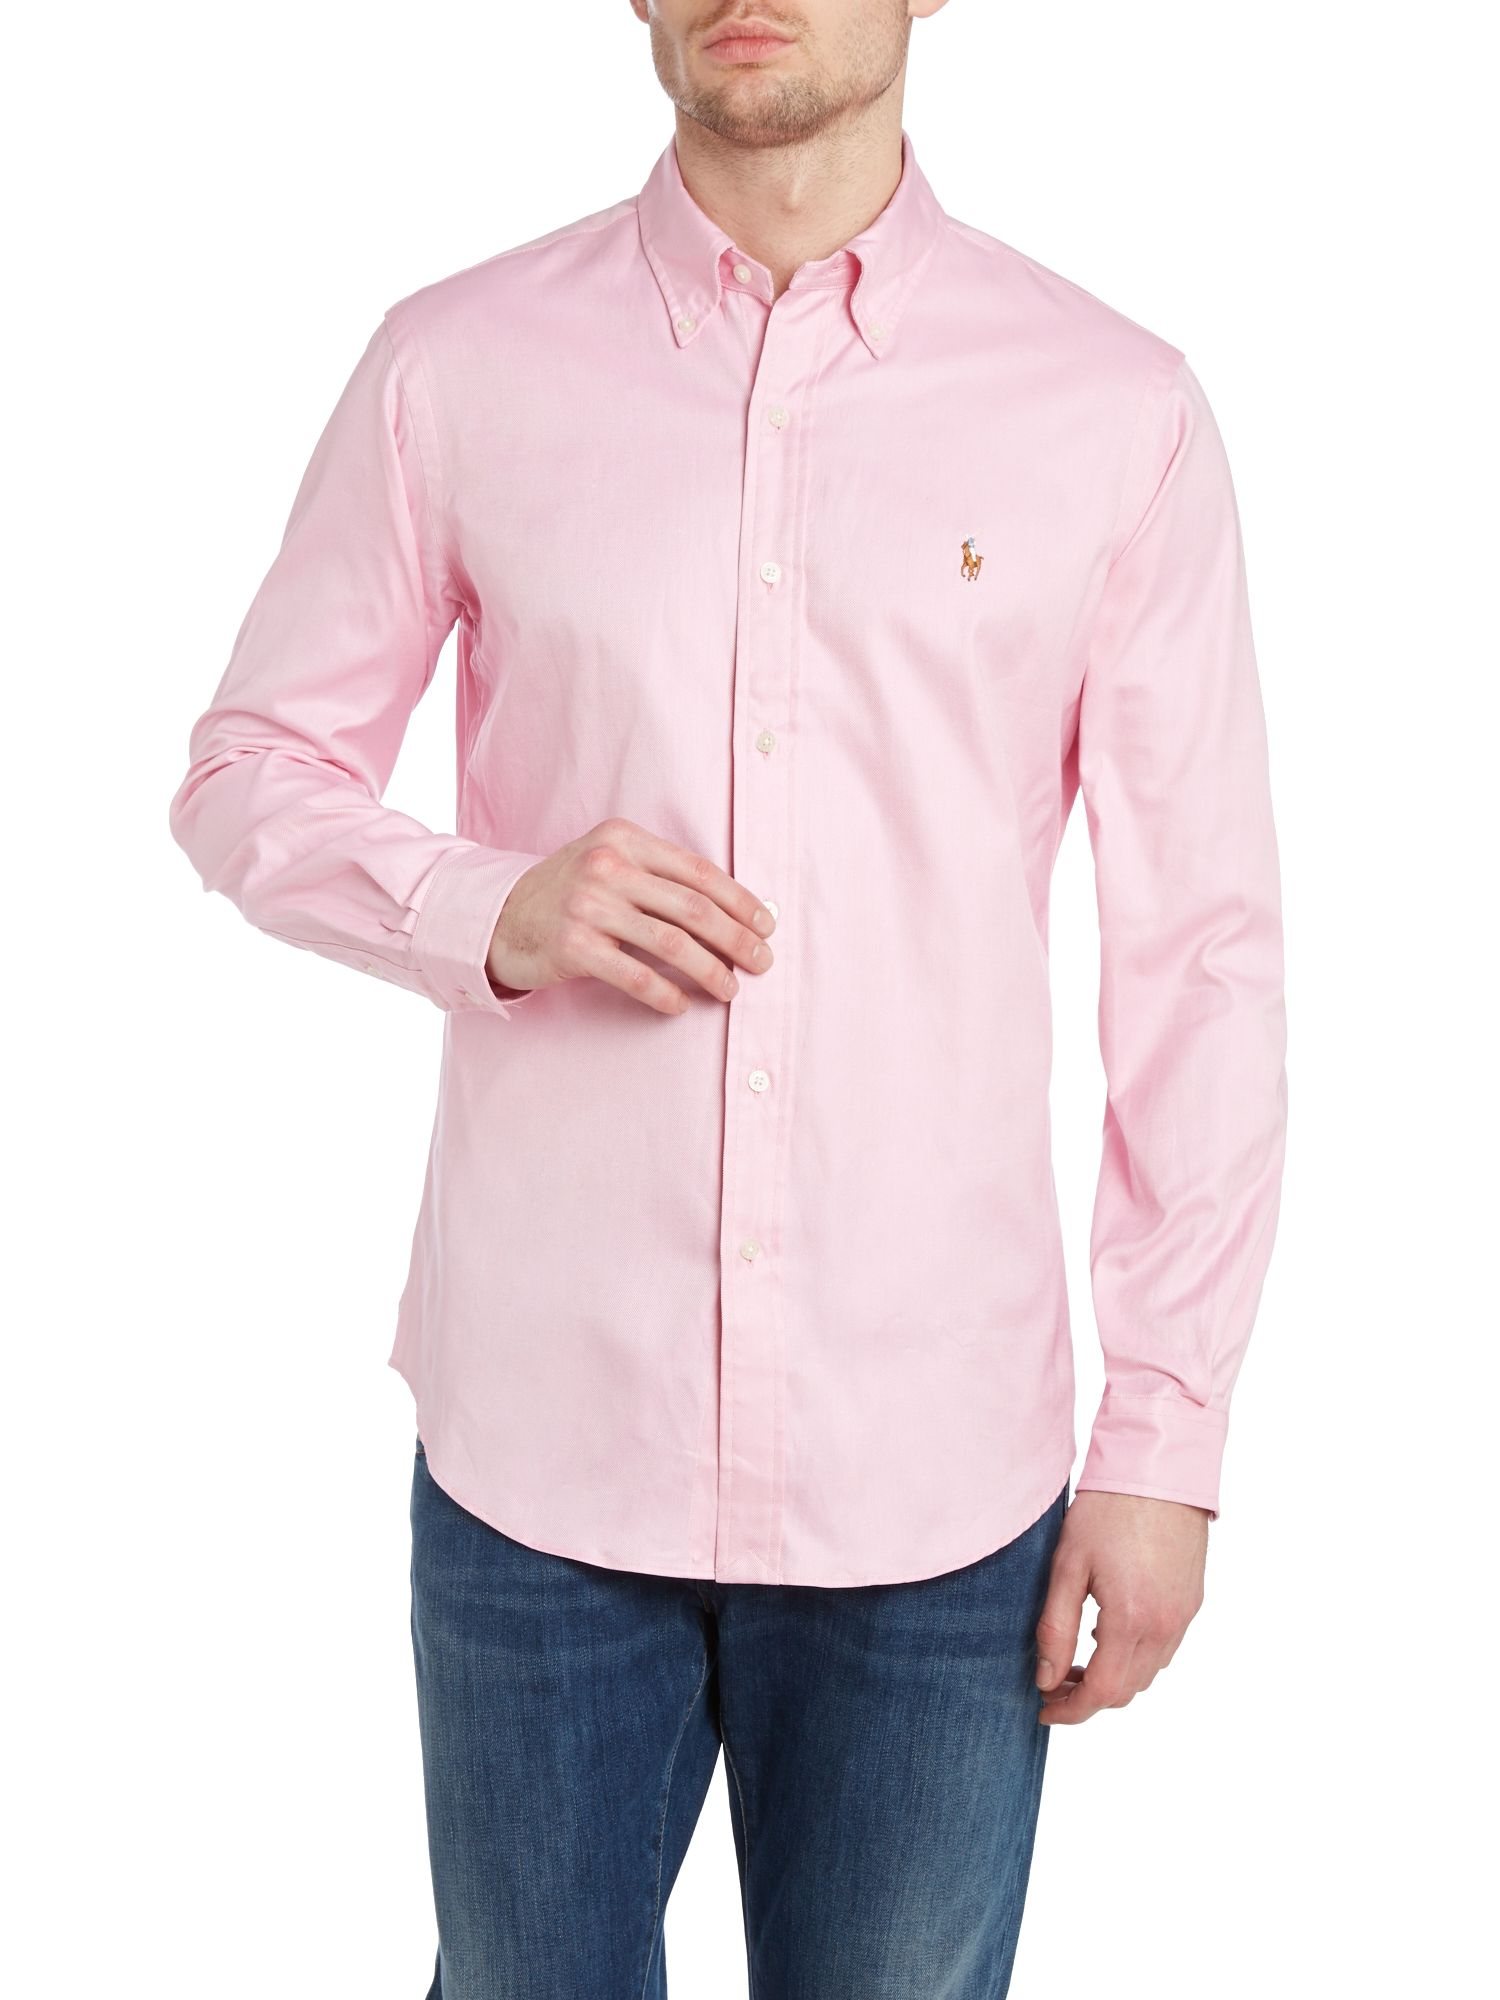 Classic custom fit long sleeve shirt